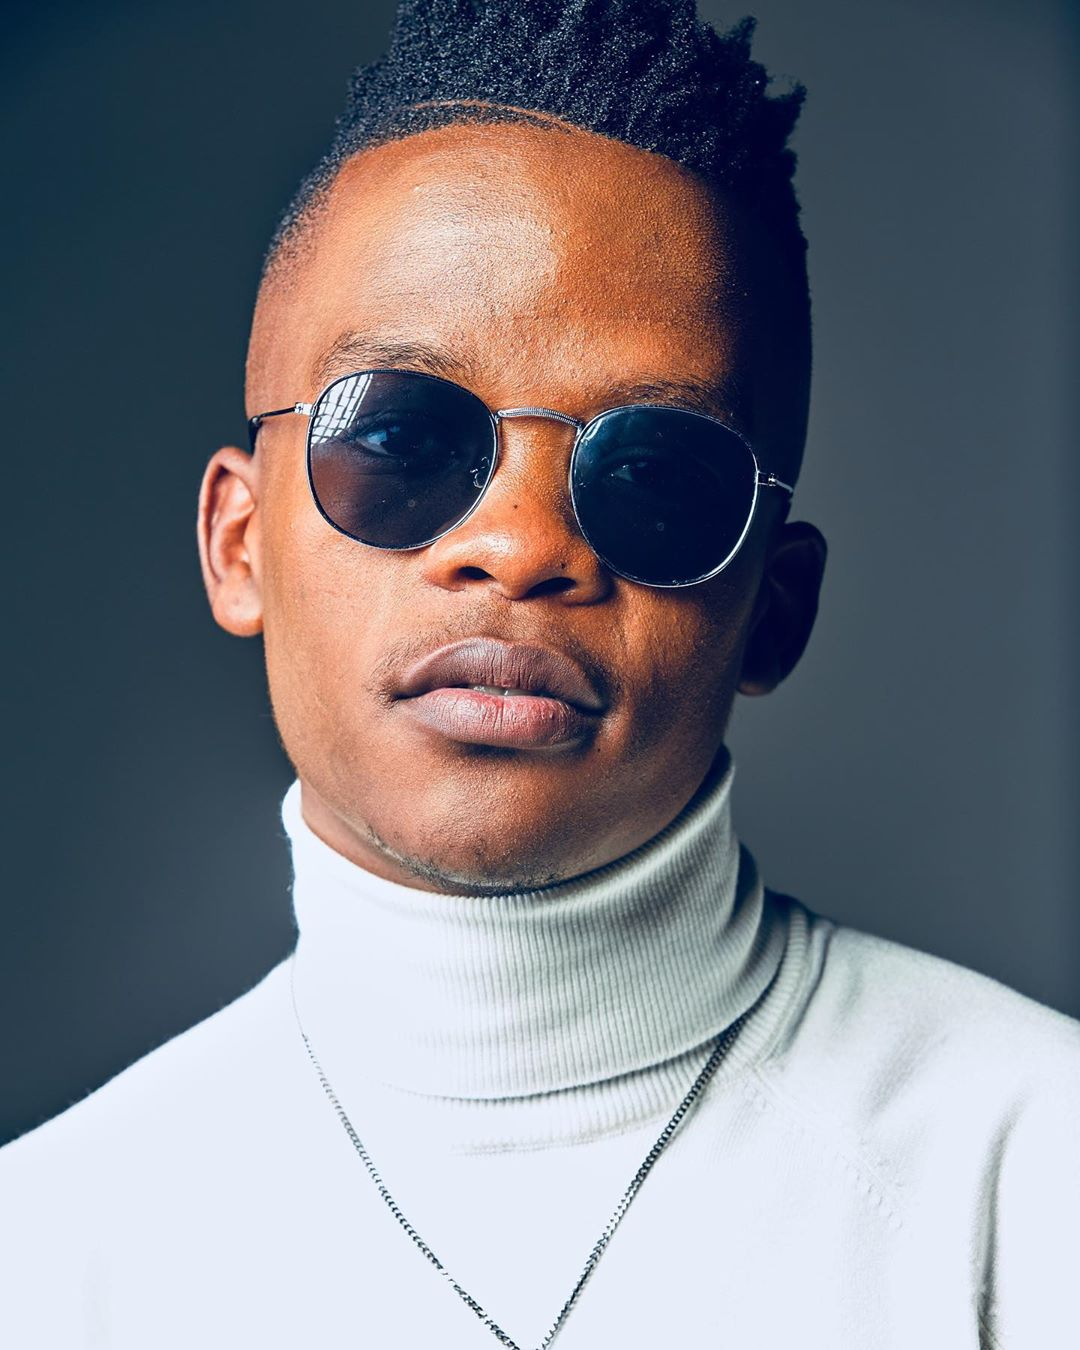 """DJ Tira helped me open my record label"" – TNS reveals"